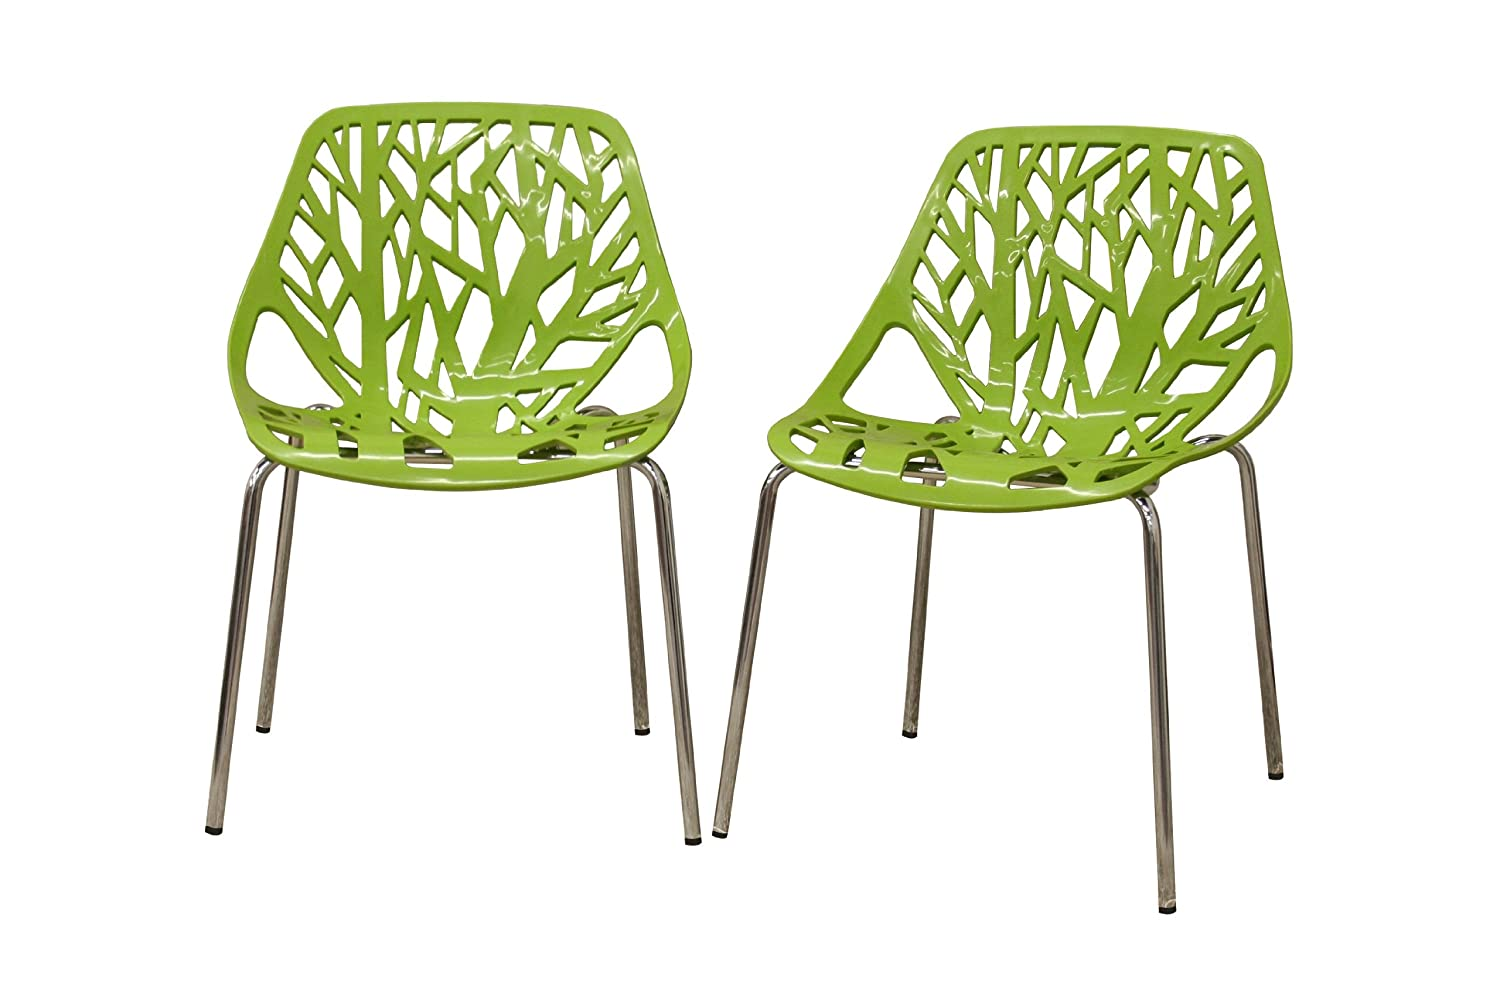 Captivating Amazon.com   Baxton Studio Birch Sapling Plastic Modern Dining Chair, Green,  Set Of 2   Chairs